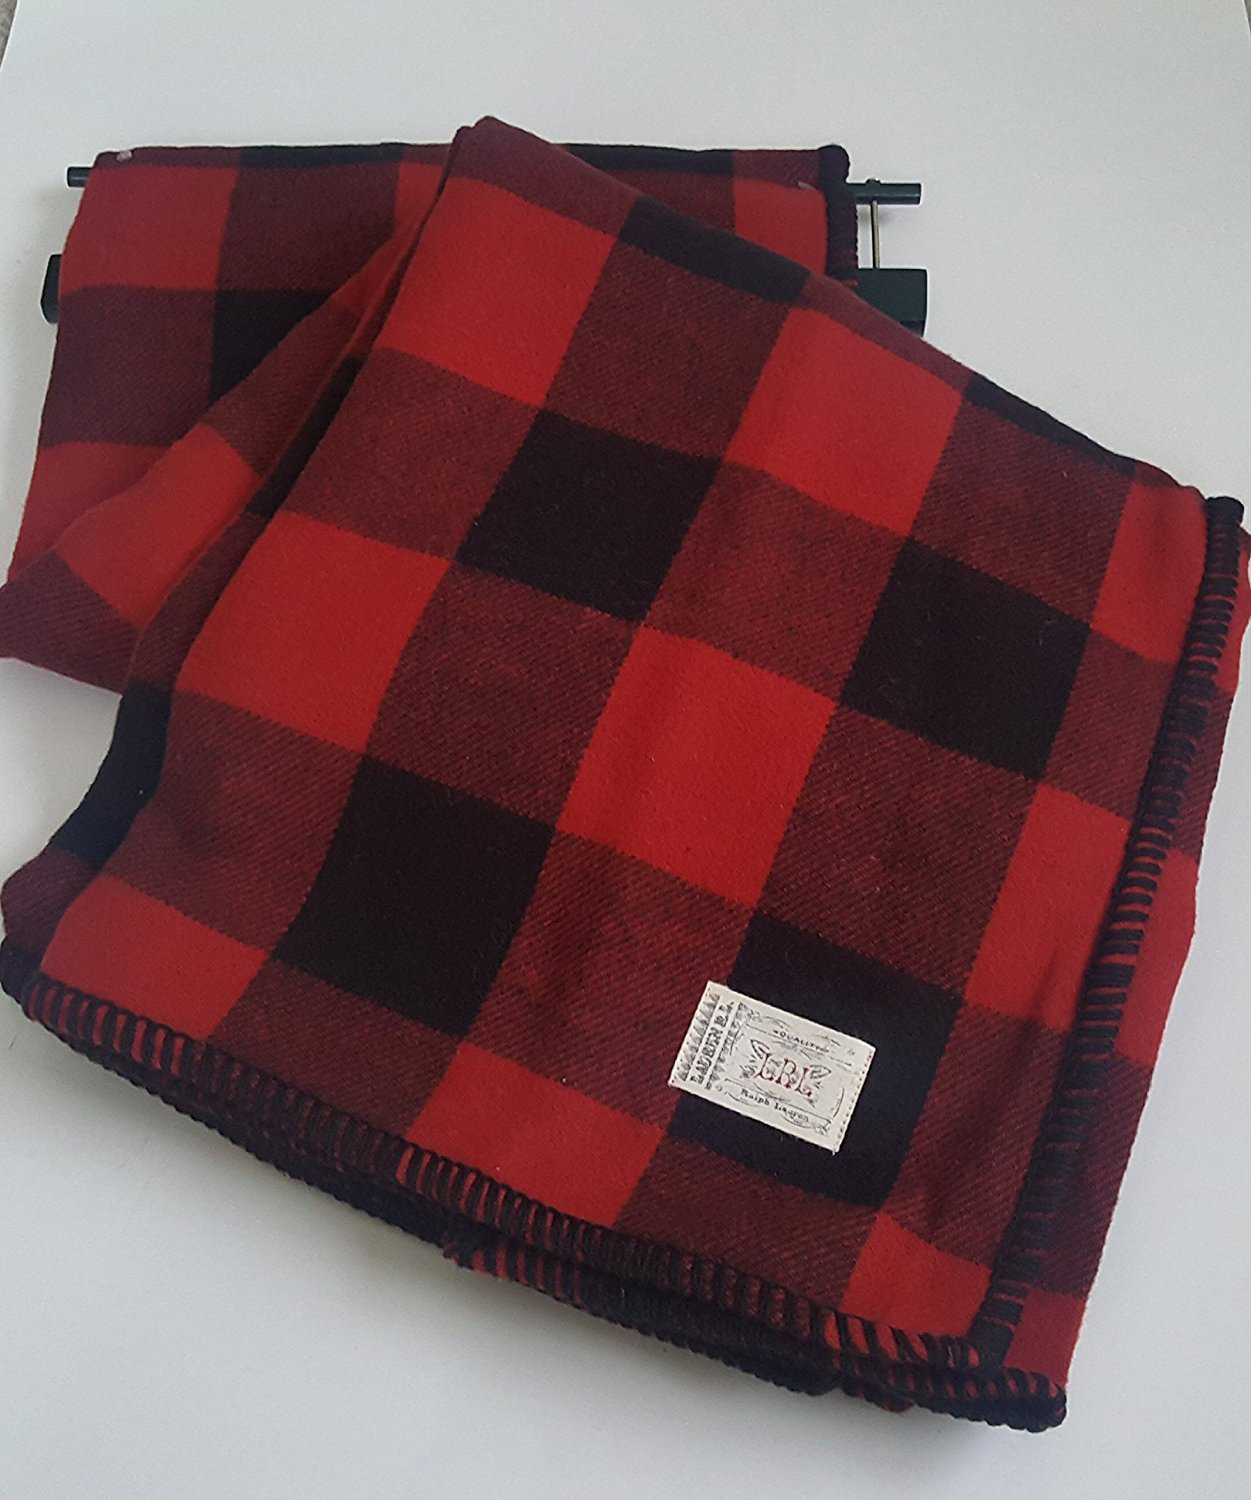 Lauren Ralph Lauren Buffalo Plaid Brushed Cotton Throw Blanket Red Black Check Checkered Bedding